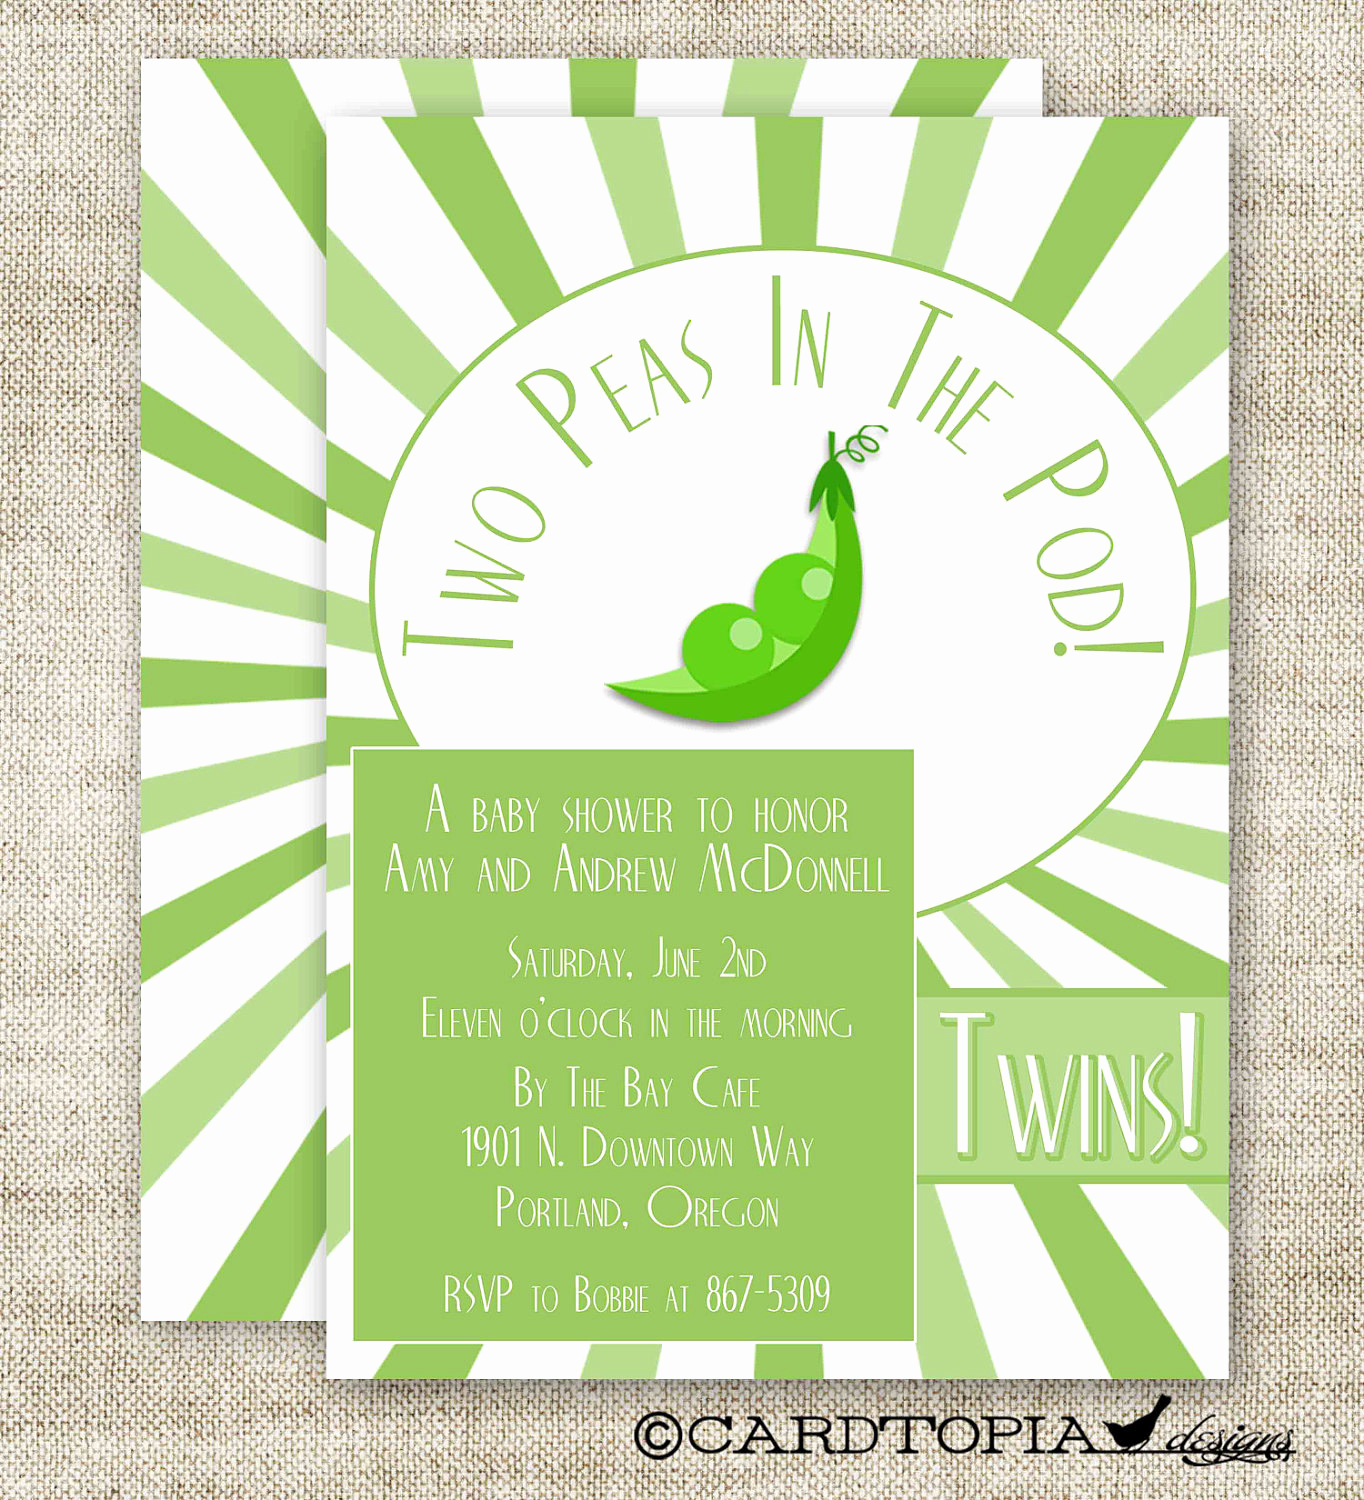 Baby Shower Invitation for Twins Luxury Twin Baby Shower Invitations Digital Printable Personalized